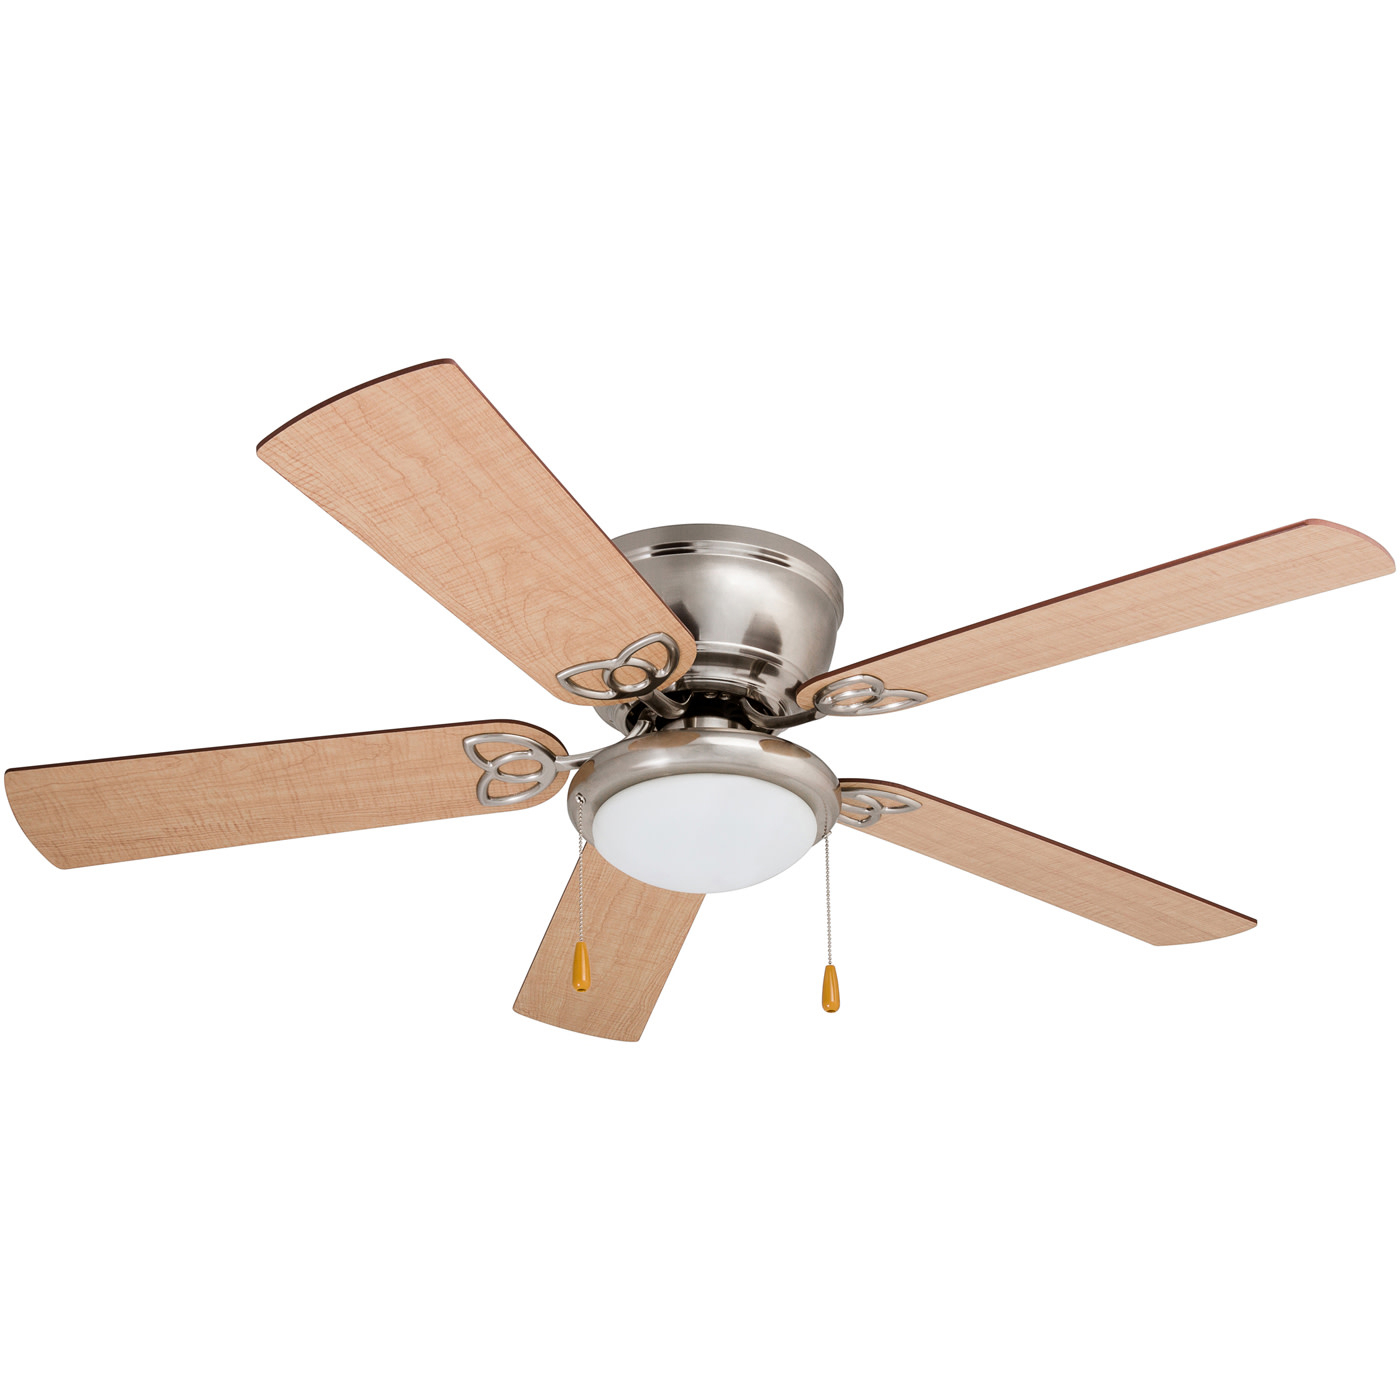 "Famous Details About Prominence Home Benton Benton 52"" 5 Blade Led Hugger Indoor  Ceiling Fan With For Cedarton 5 Blade Led Ceiling Fans (View 14 of 20)"